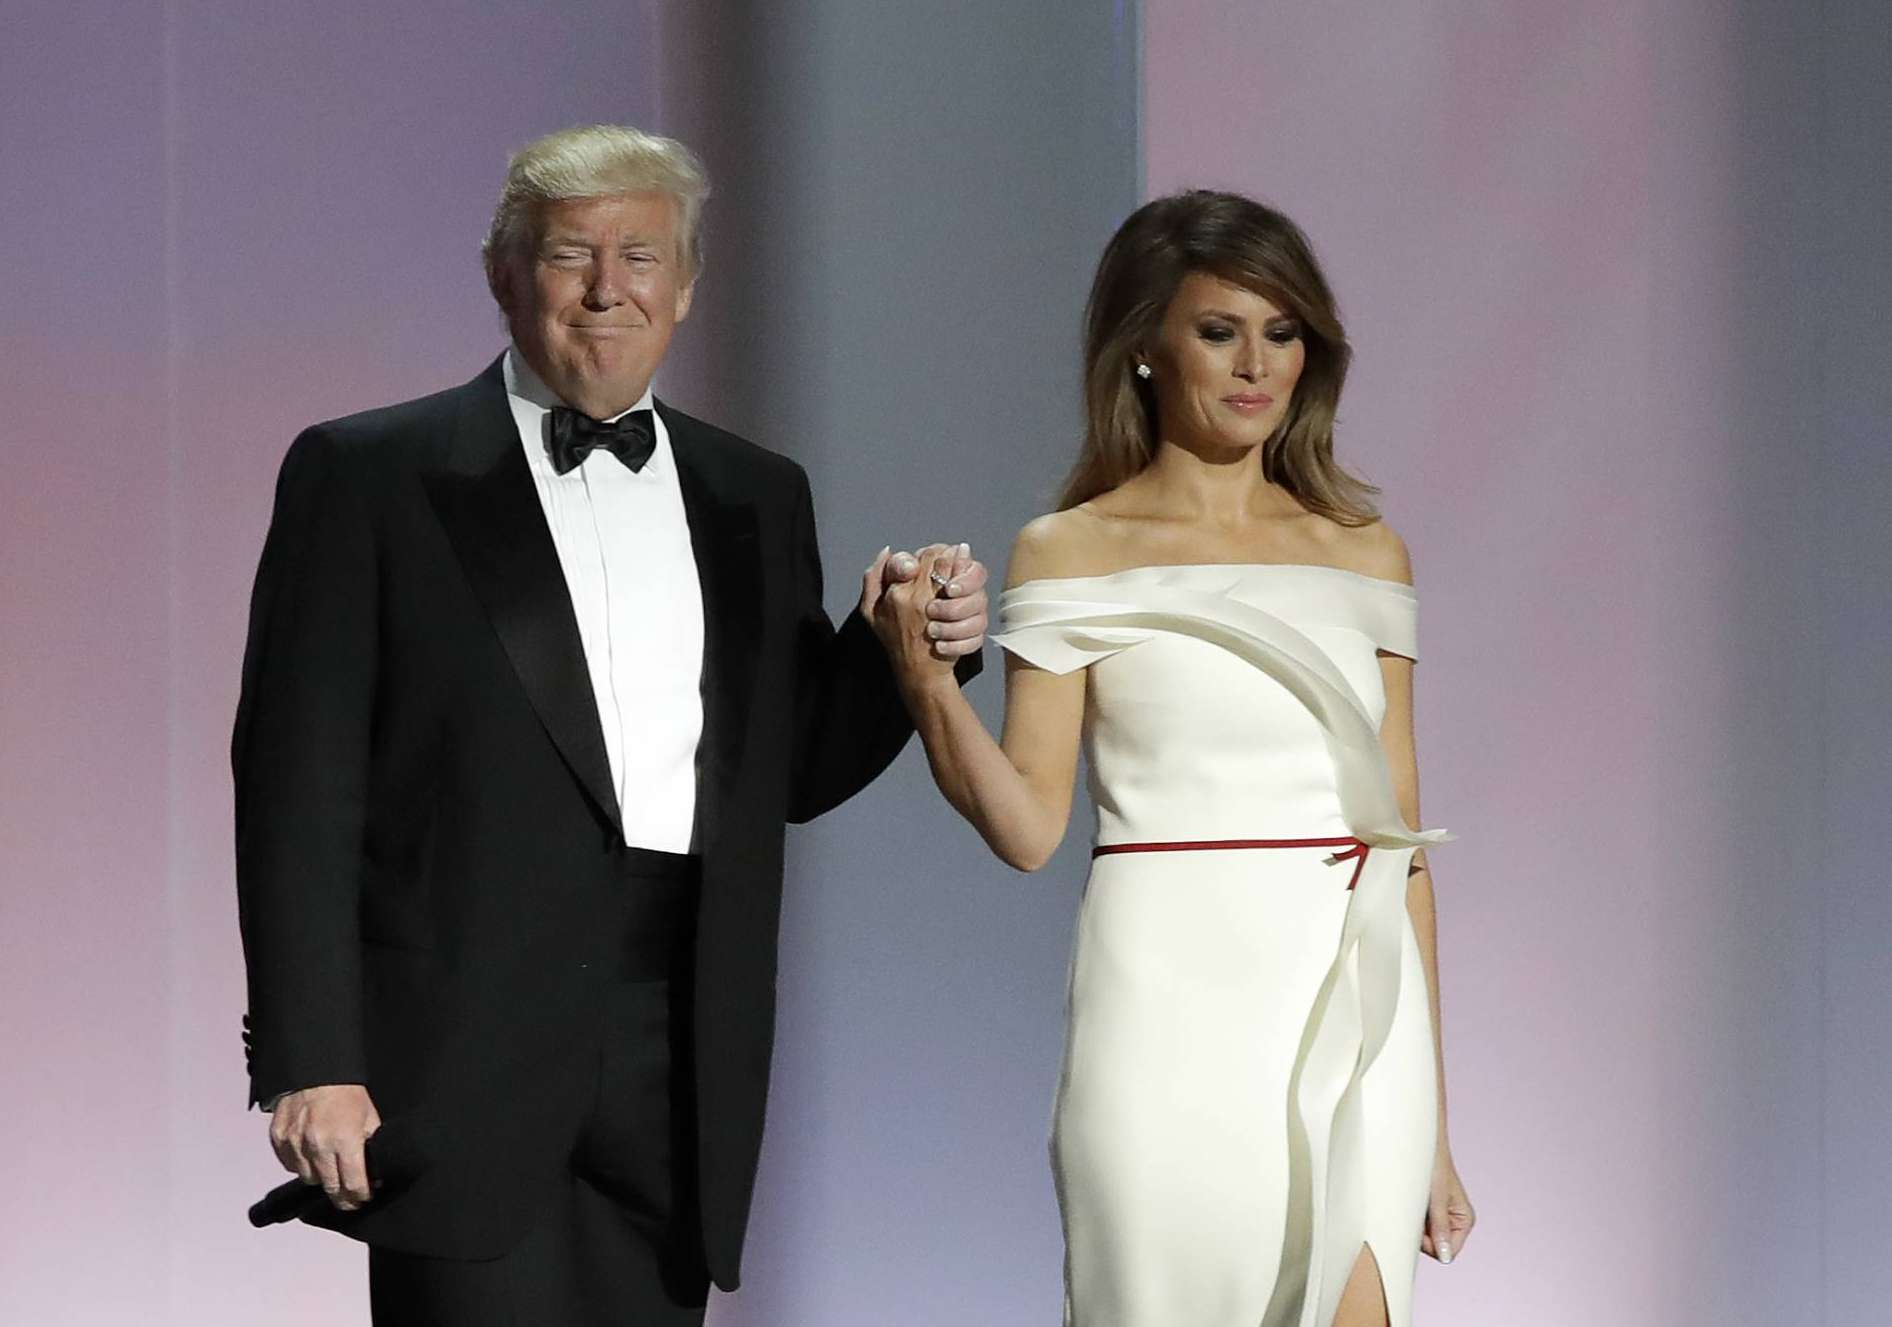 Melania Trump to donate inaugural ball gown to Smithsonian | WTOP